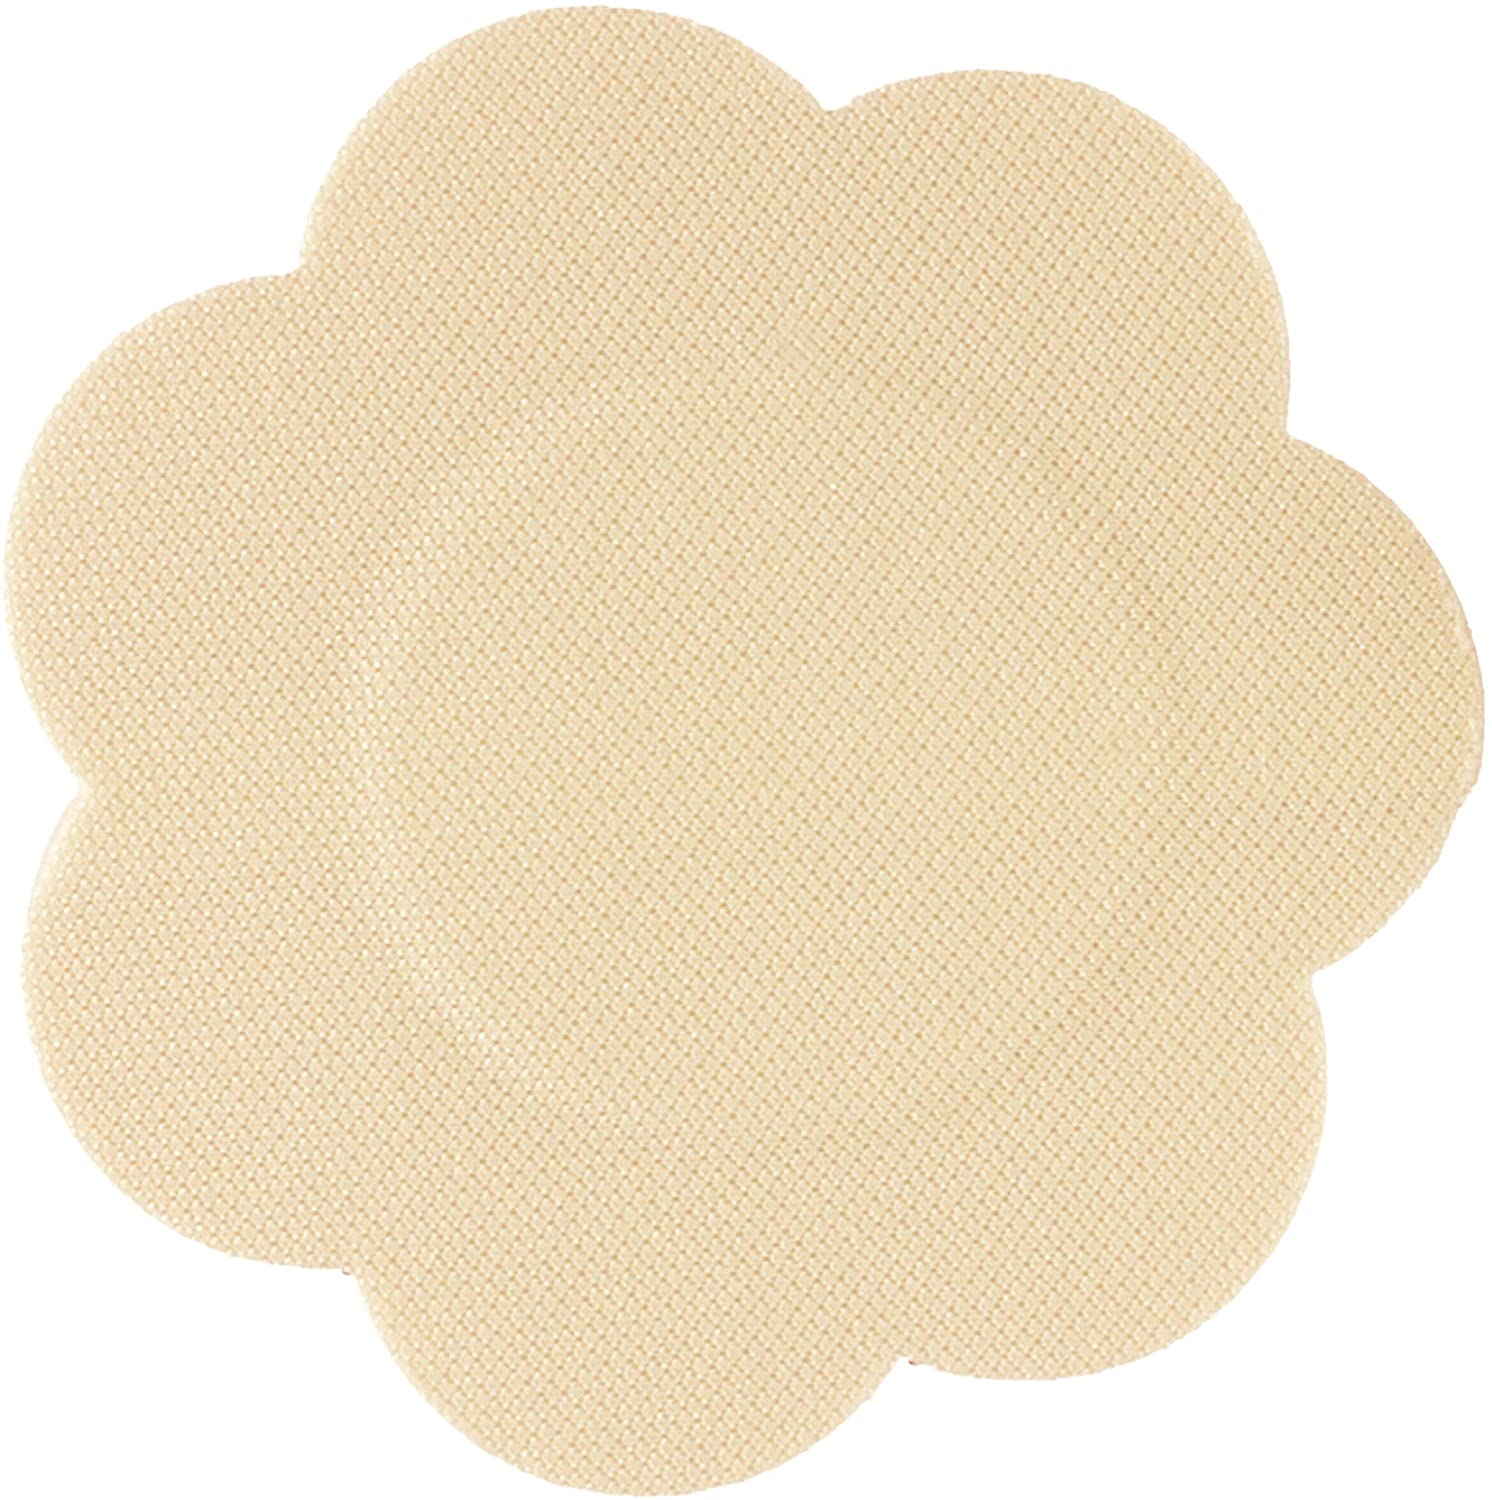 Braza Disposable Petal Tops Adhesive Nipple Covers - 15 Pair - Beige